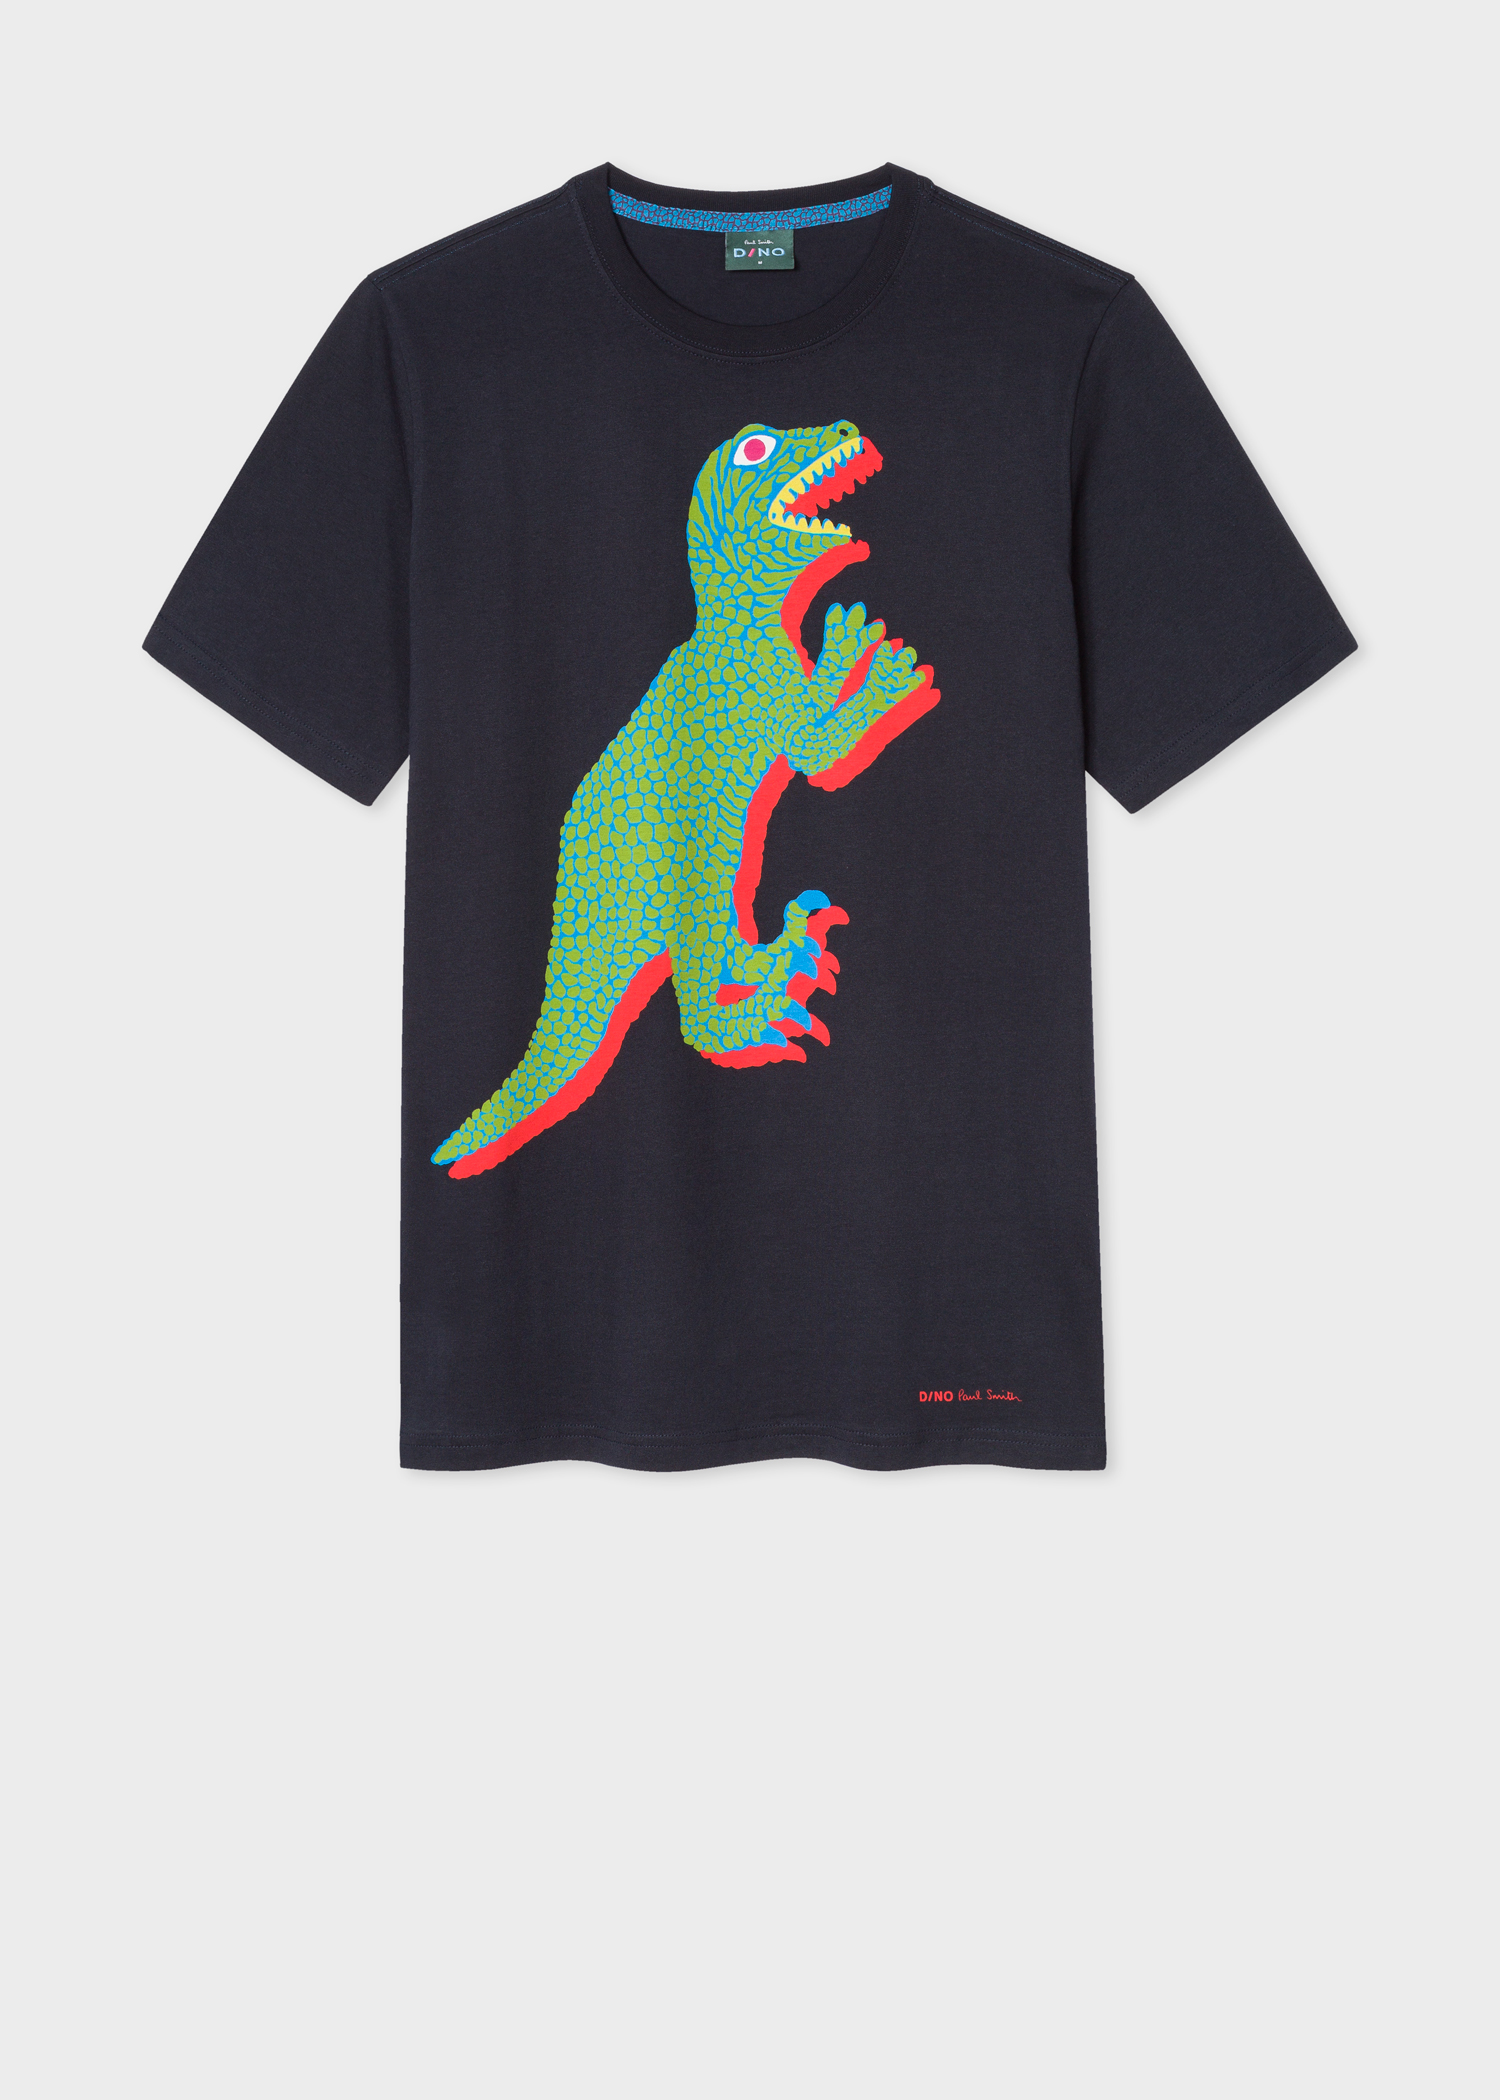 723a2e5a8adc0 Front view - Men s Black Large Green  Dino  Print Organic-Cotton T- · Model  front close up ...